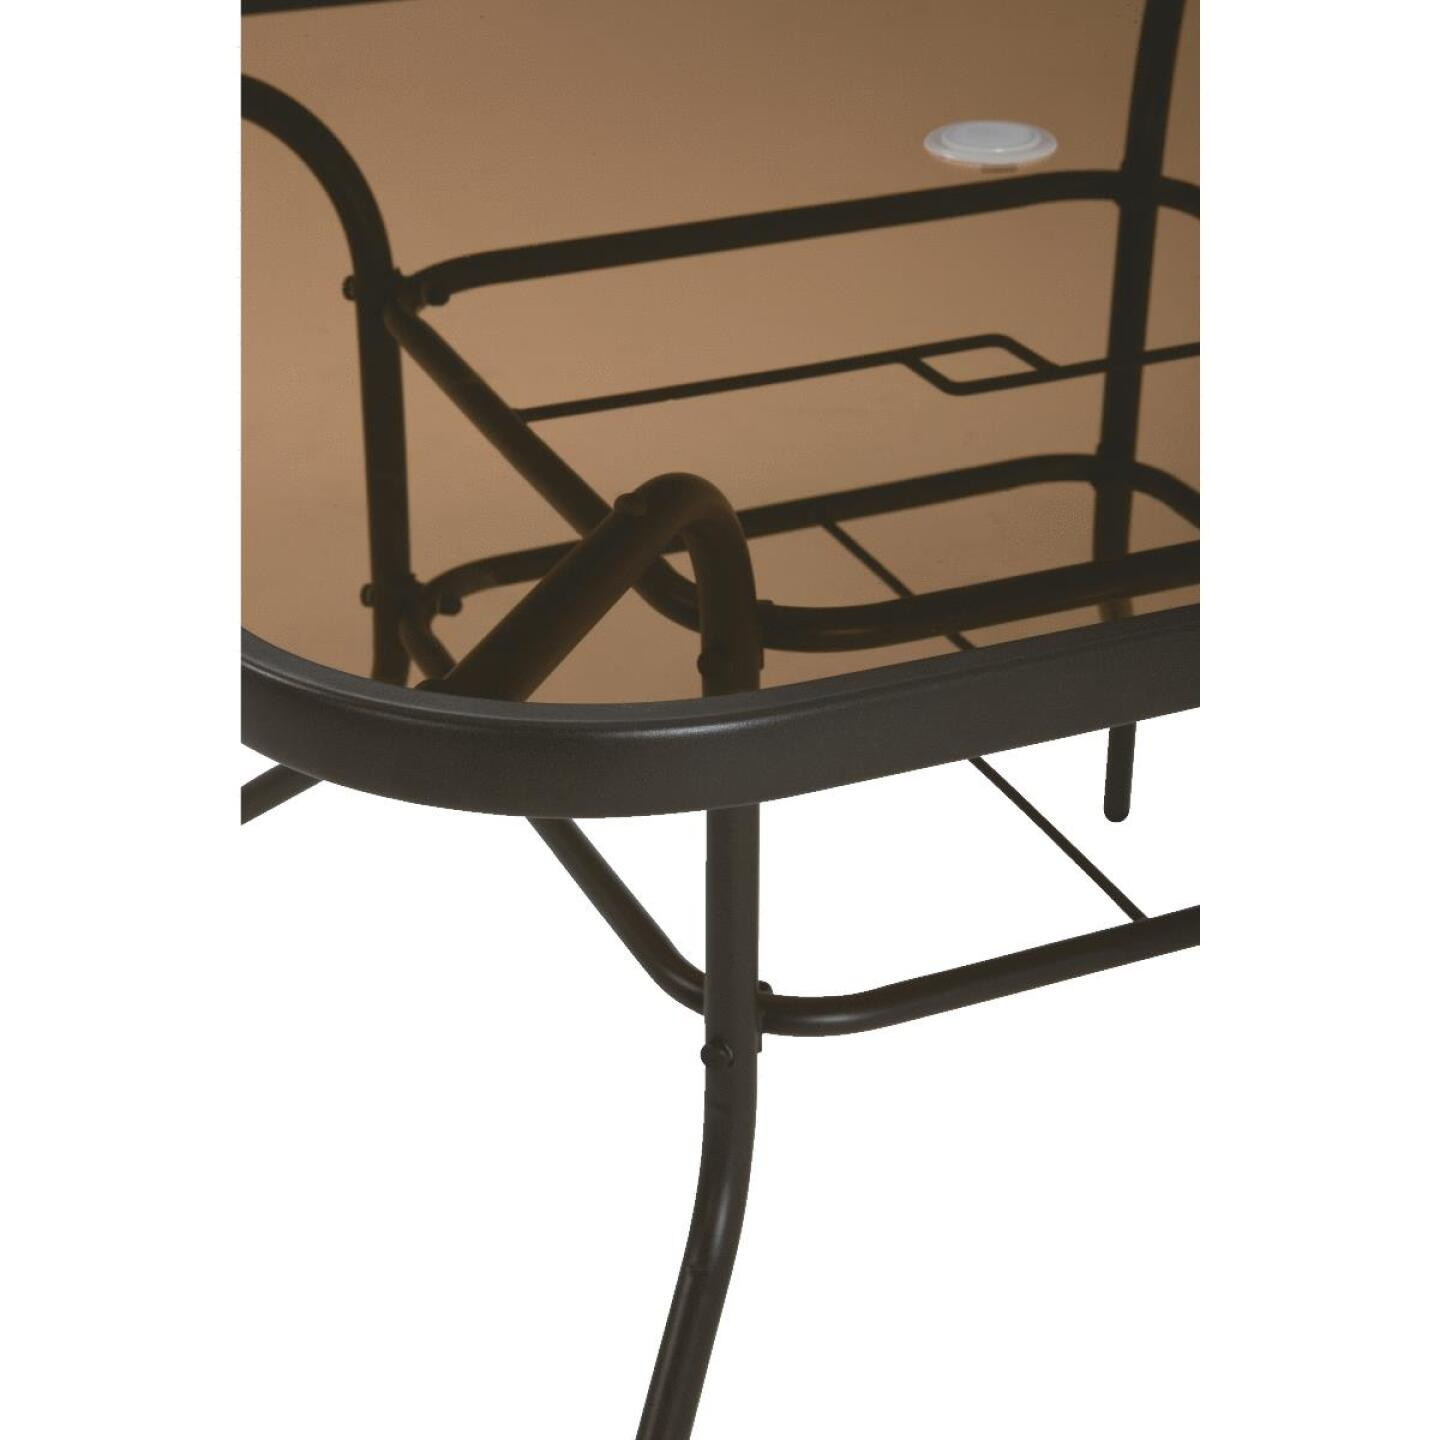 Outdoor Expressions Greenville 40 In. Square Brown Steel Tinted Glass Table Image 3